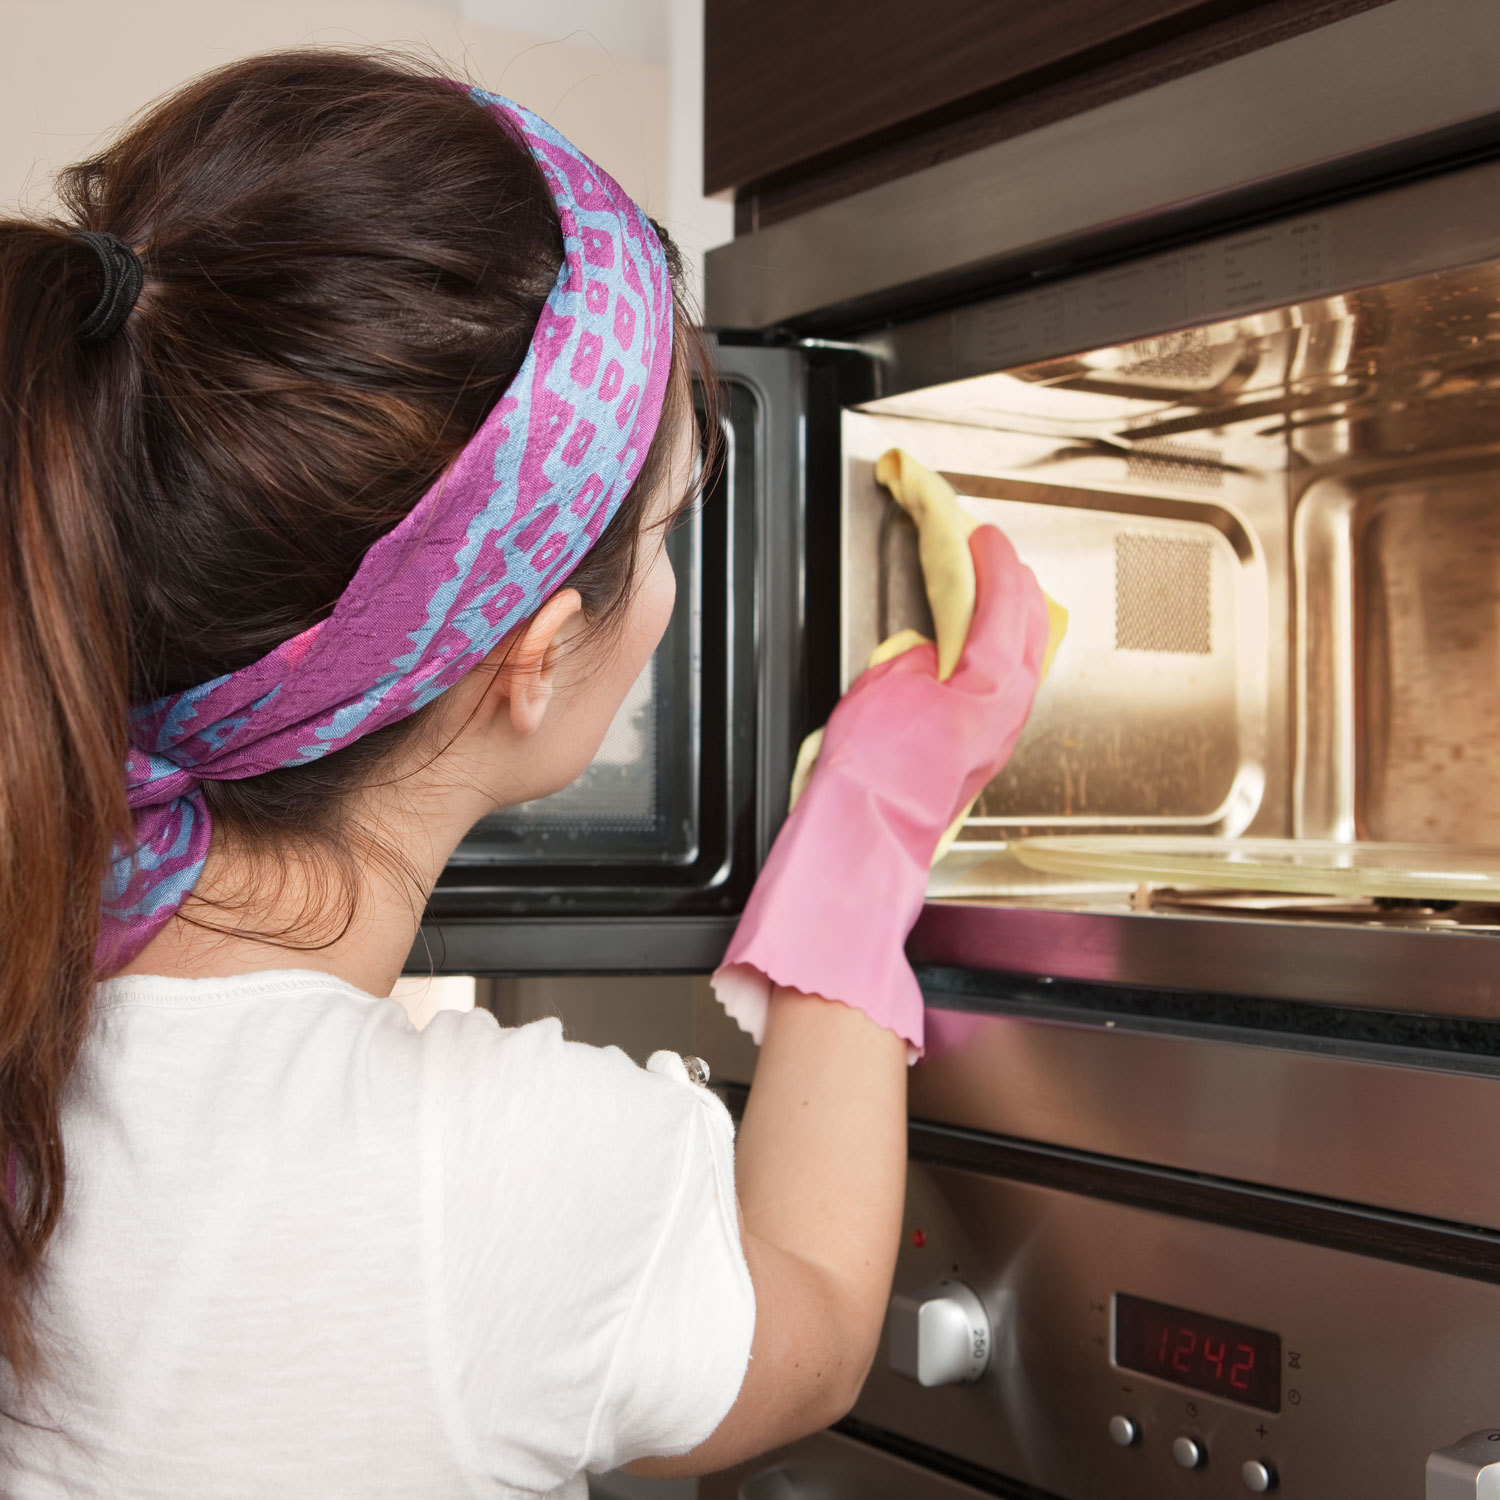 Woman cleaning a microwave oven